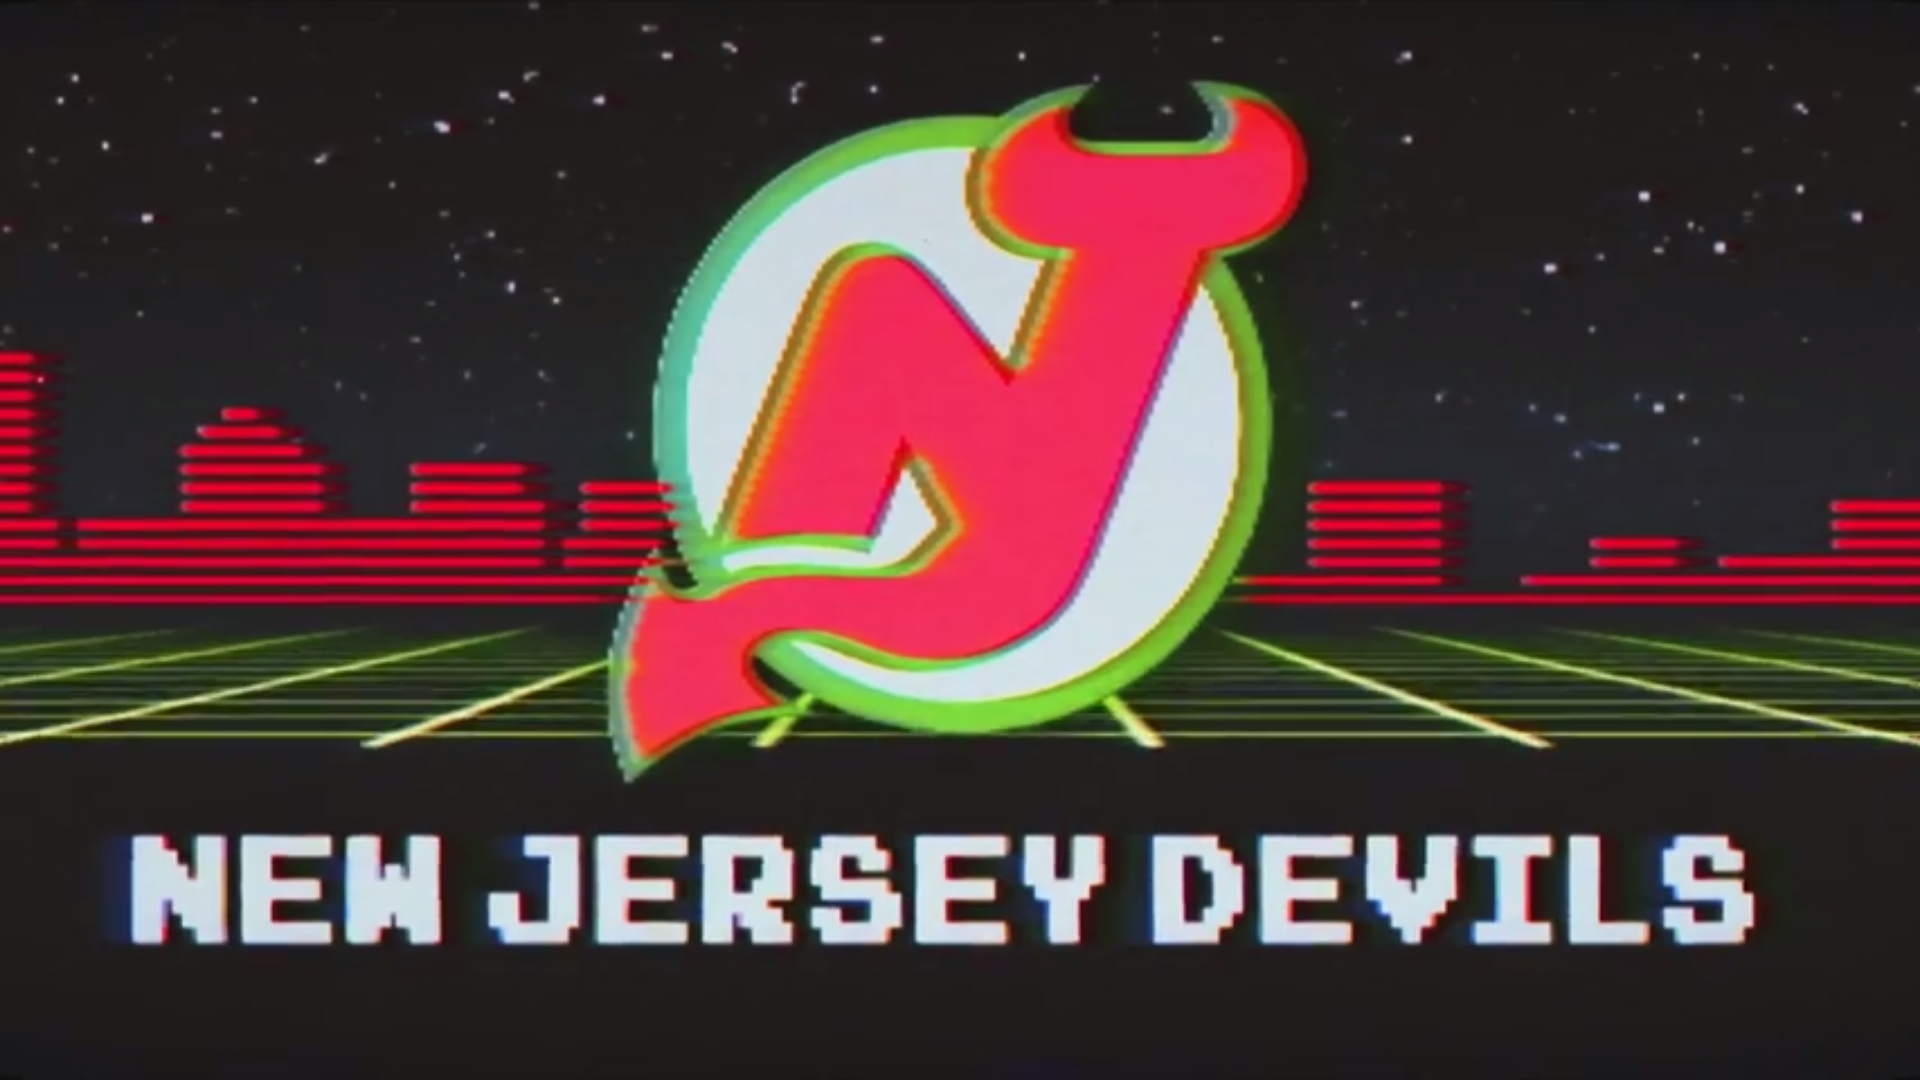 1920x1080 - New Jersey Devils Wallpapers 1